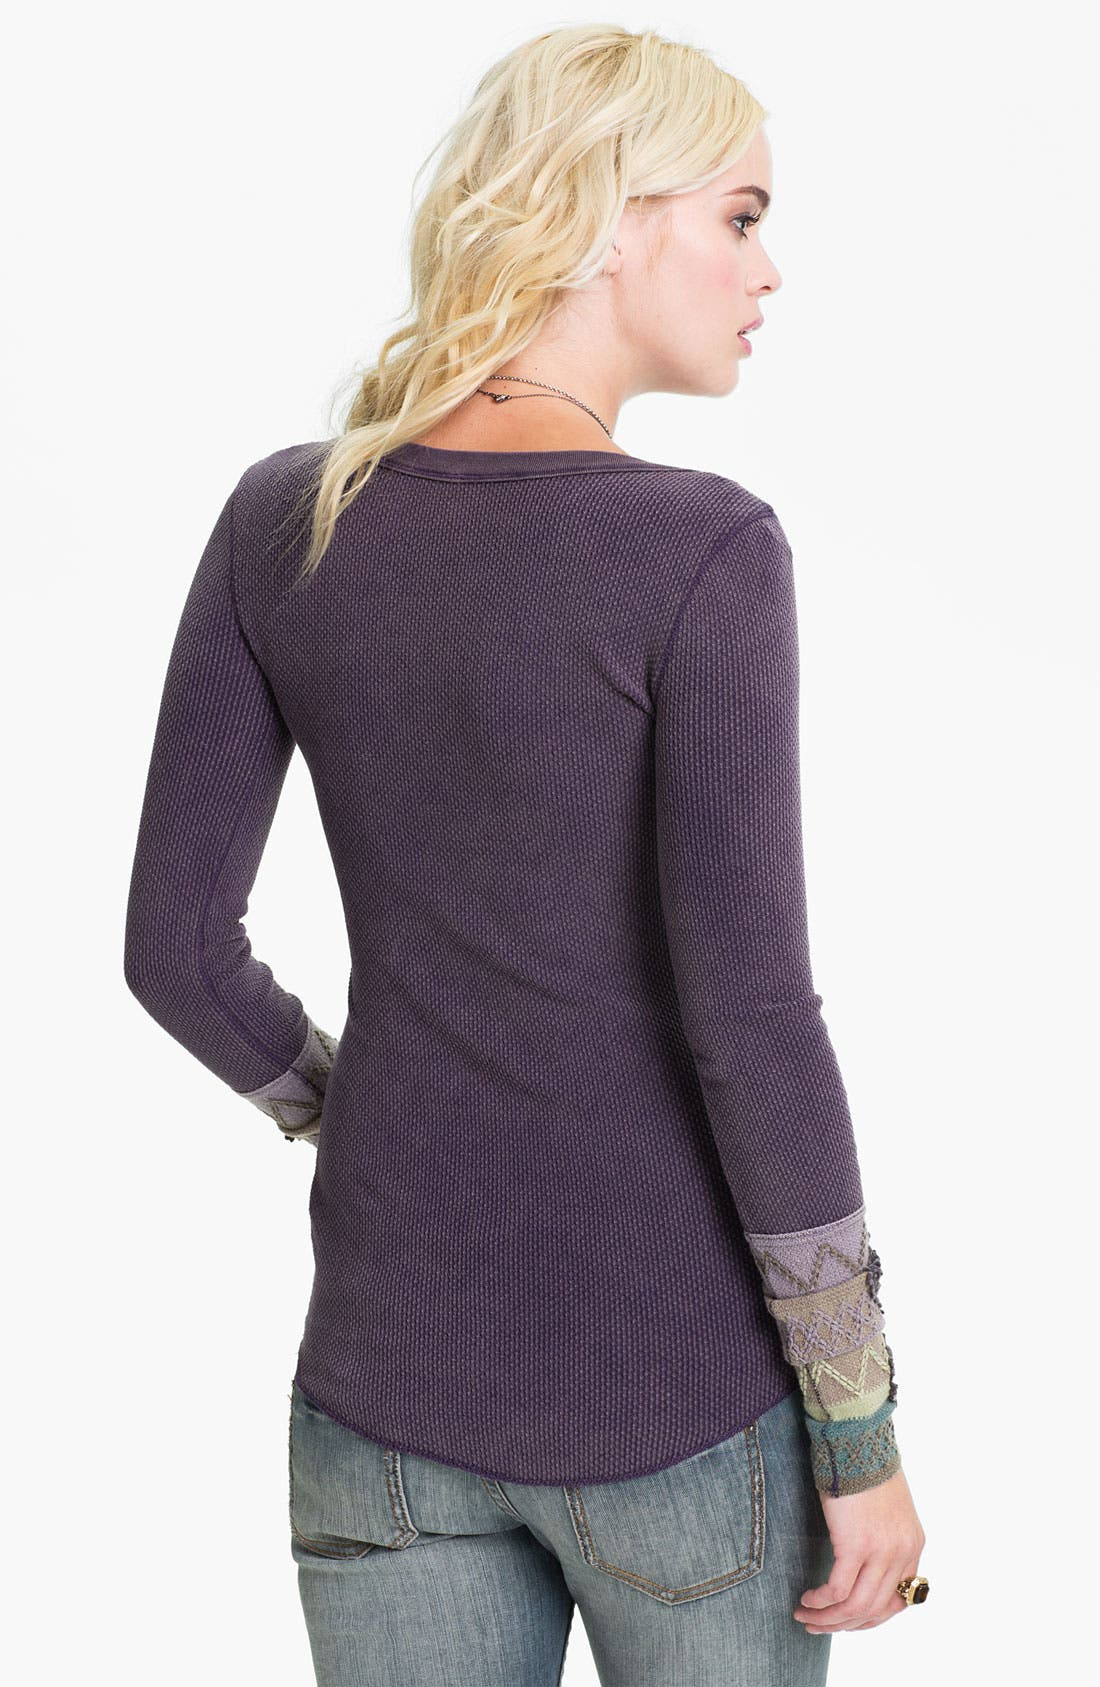 'Kombucha' Embroidered Thermal Top,                             Alternate thumbnail 2, color,                             518